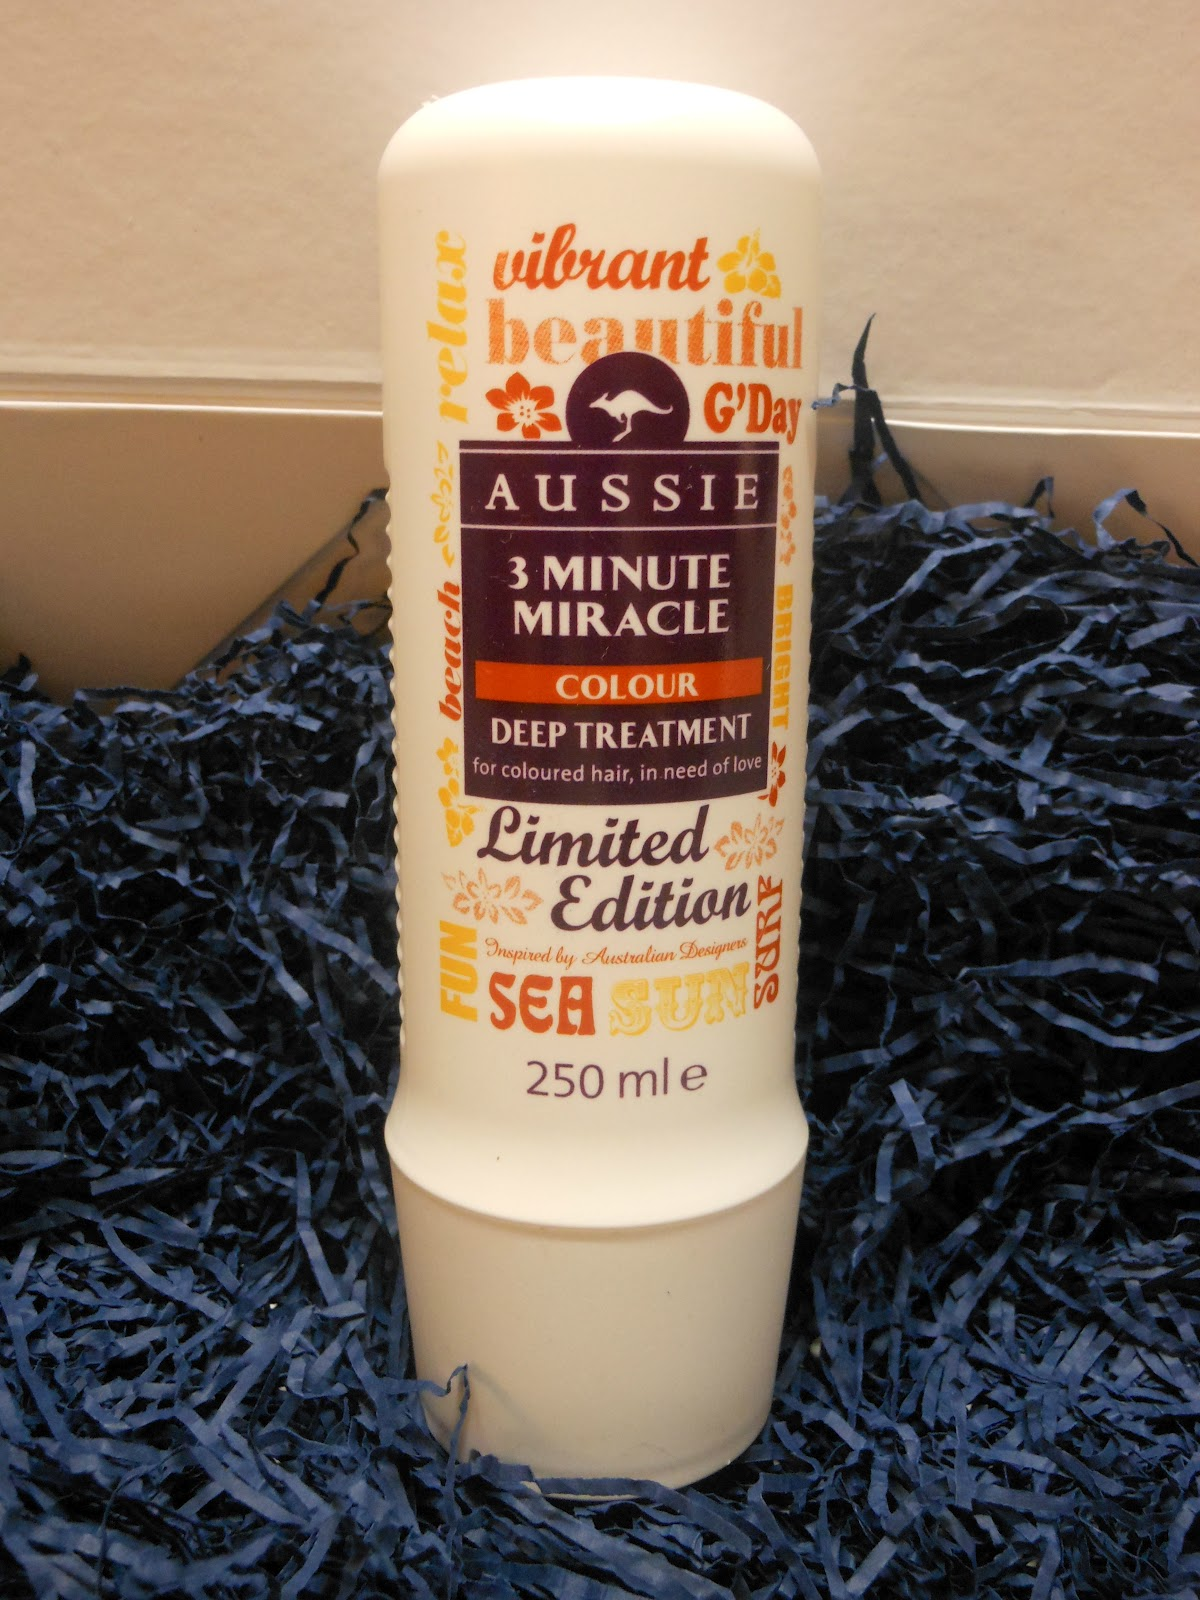 how to use 3 minute miracle aussie